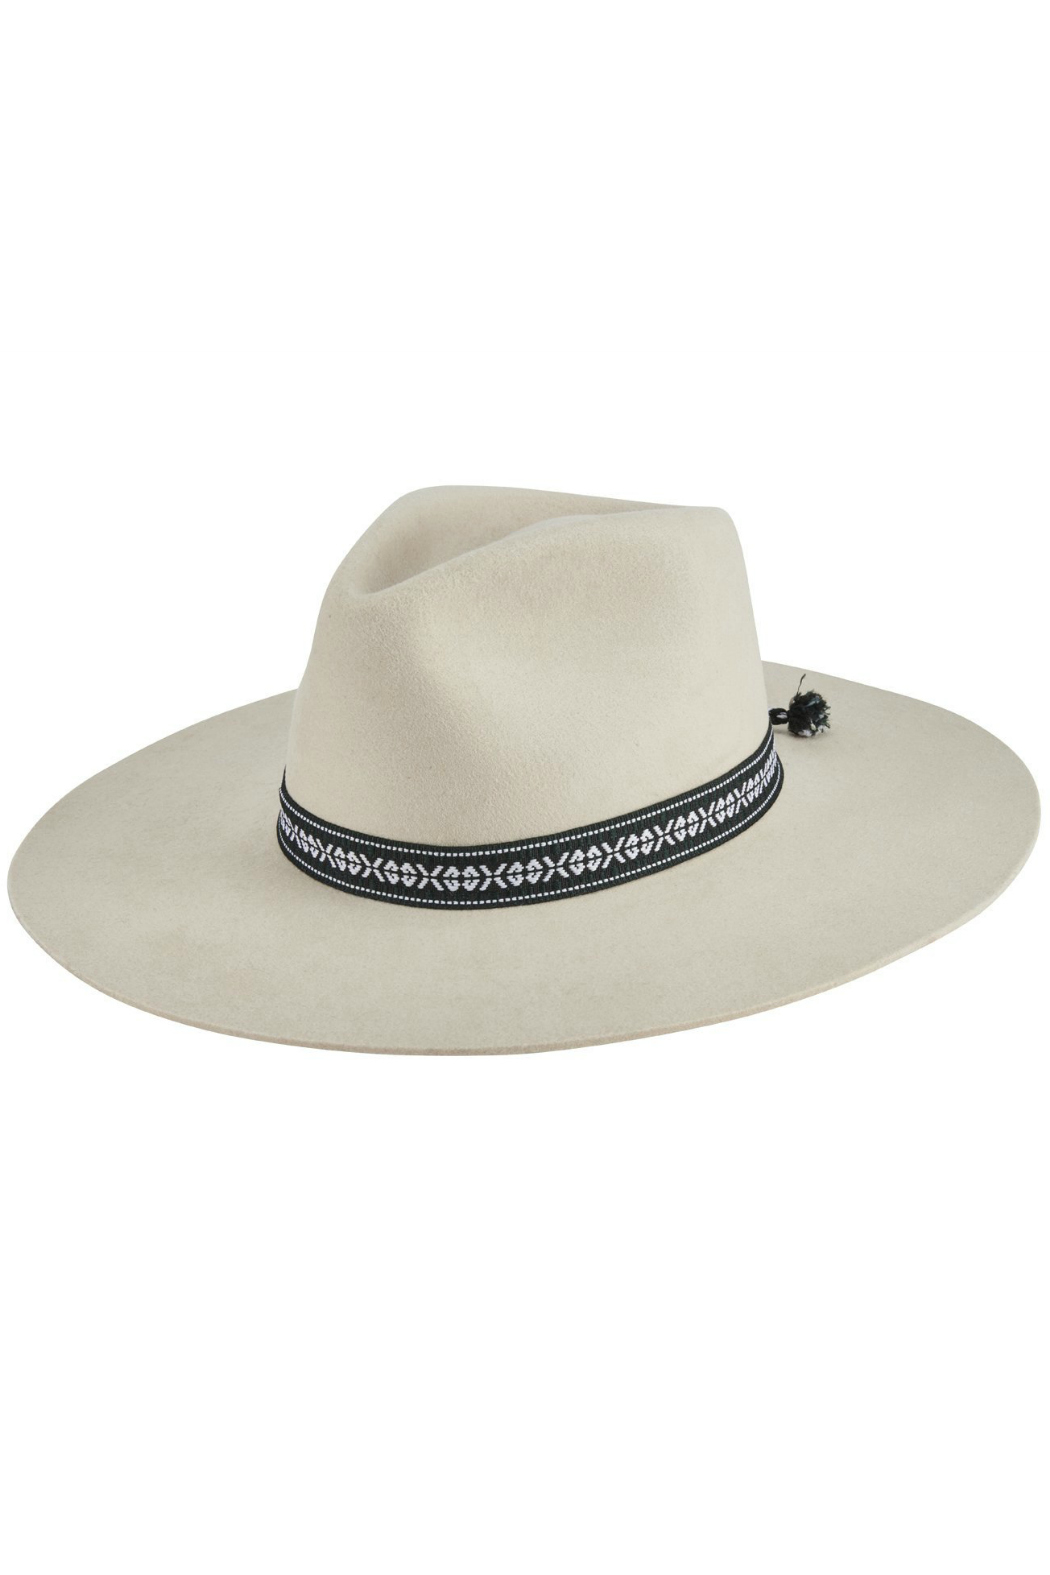 San Diego Hat Company WOMEN'S PINCH CROWN STIFF BRIM FEDORA WITH JAQUARD BAND - Main Image